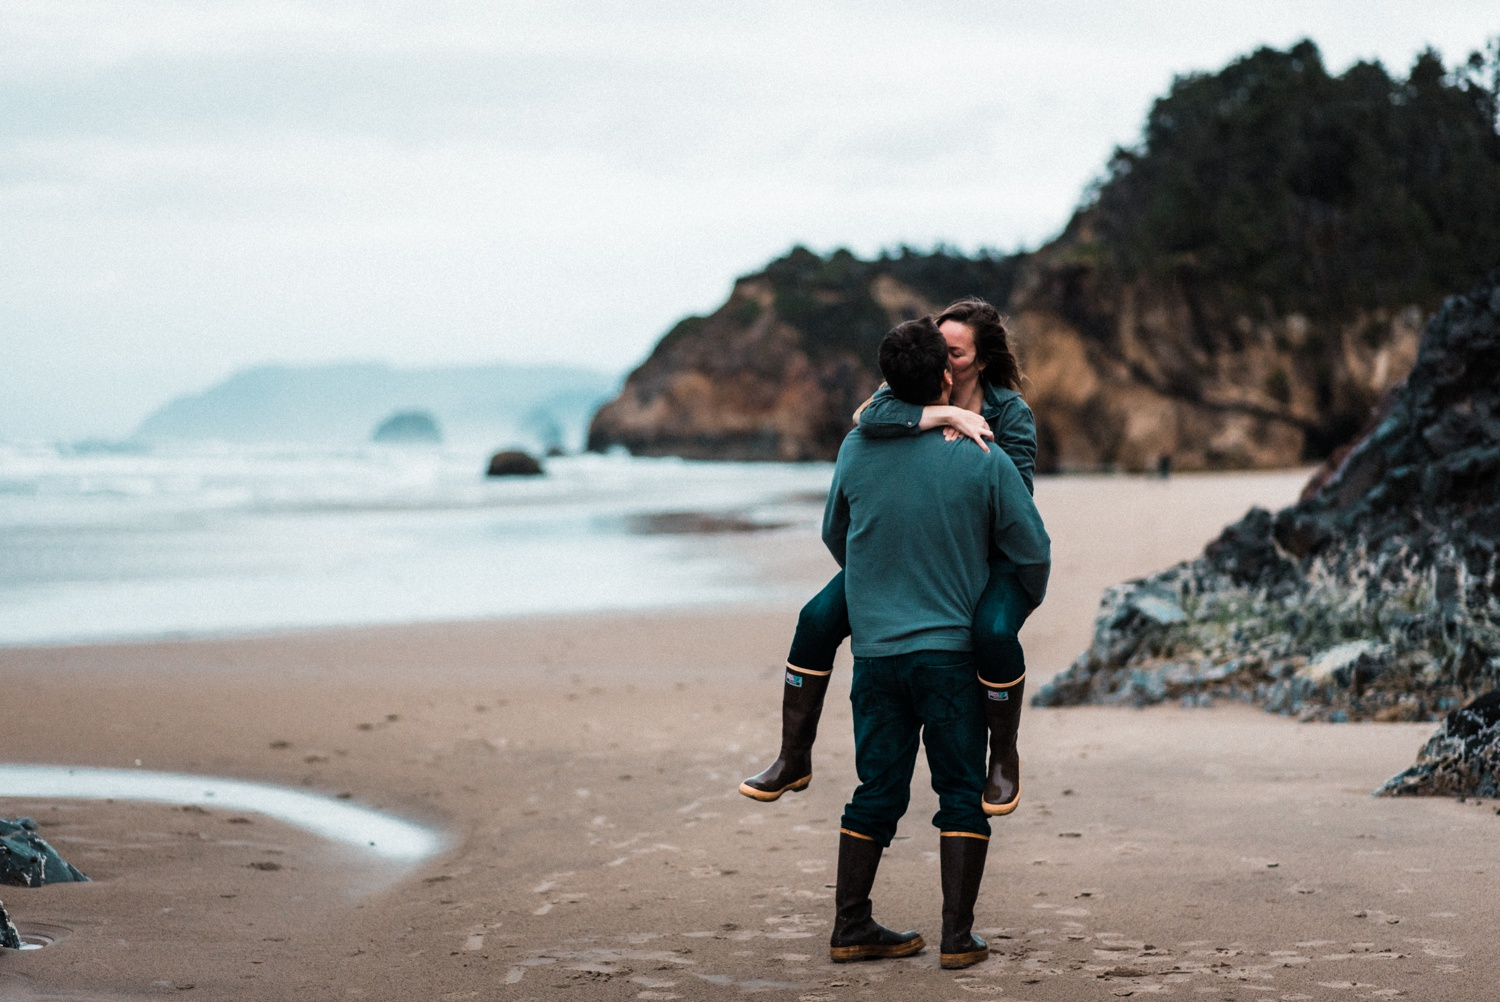 Hug_Point_Engagement_Oregon_Coast_The_Foxes_Photography_068.jpg